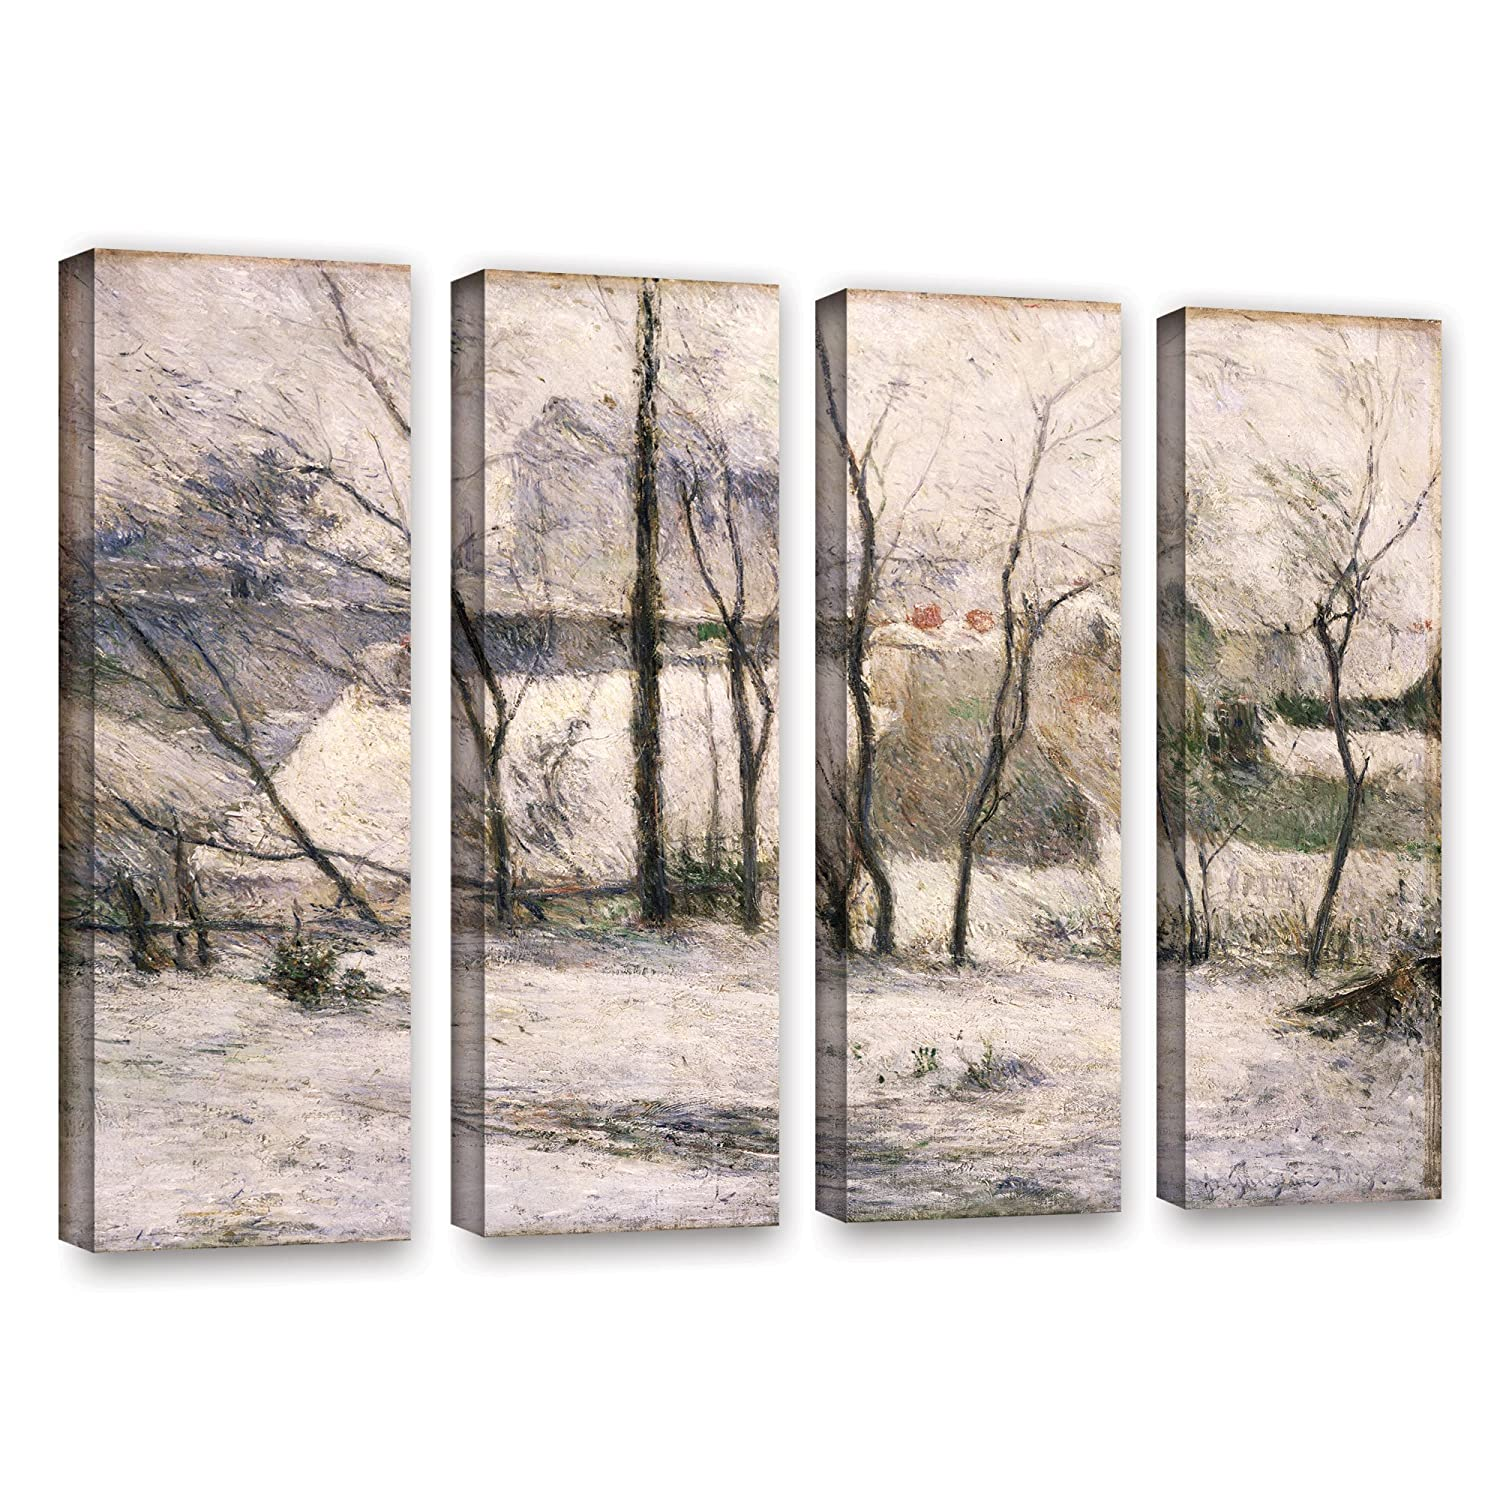 ArtWall Paul Gauguins Winter Landscape 4 Piece Gallery-Wrapped Canvas Set 36 x 48